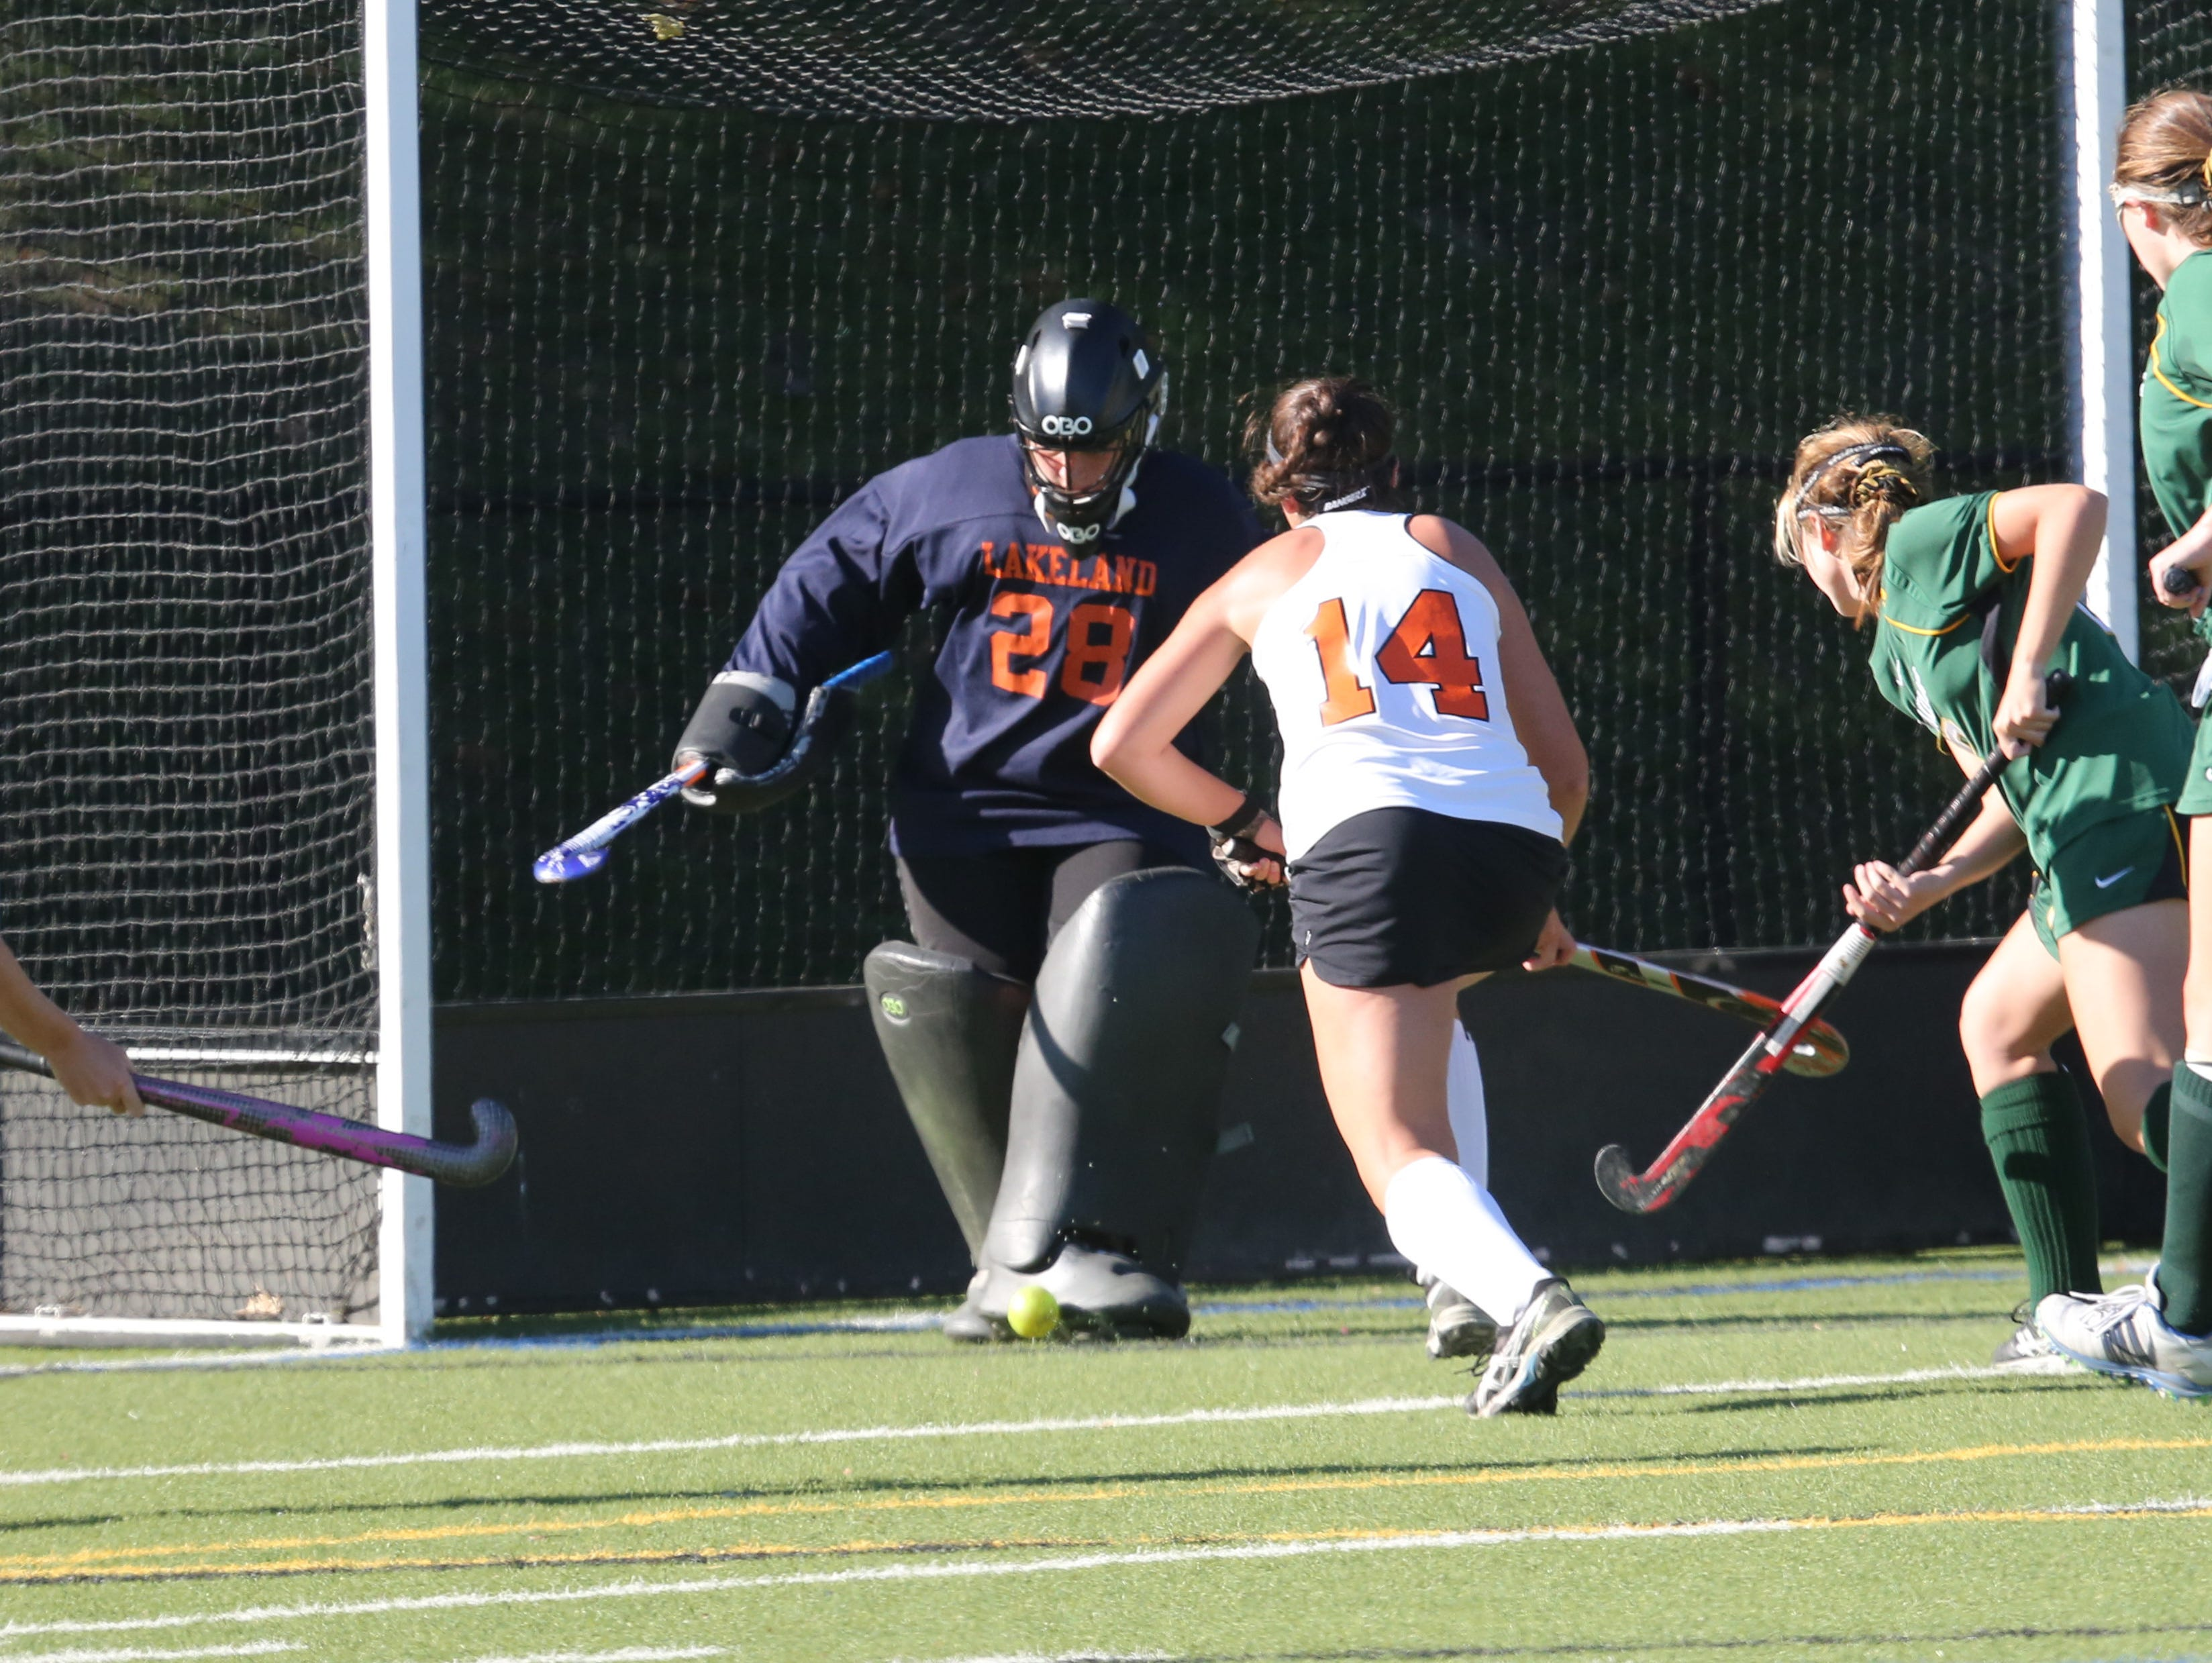 Lakeland goalie Cassie Halpin blocks a shot with Mamaroneck's Sophie Brill bearing down on her during their game at Mamaroneck High School on Saturday.